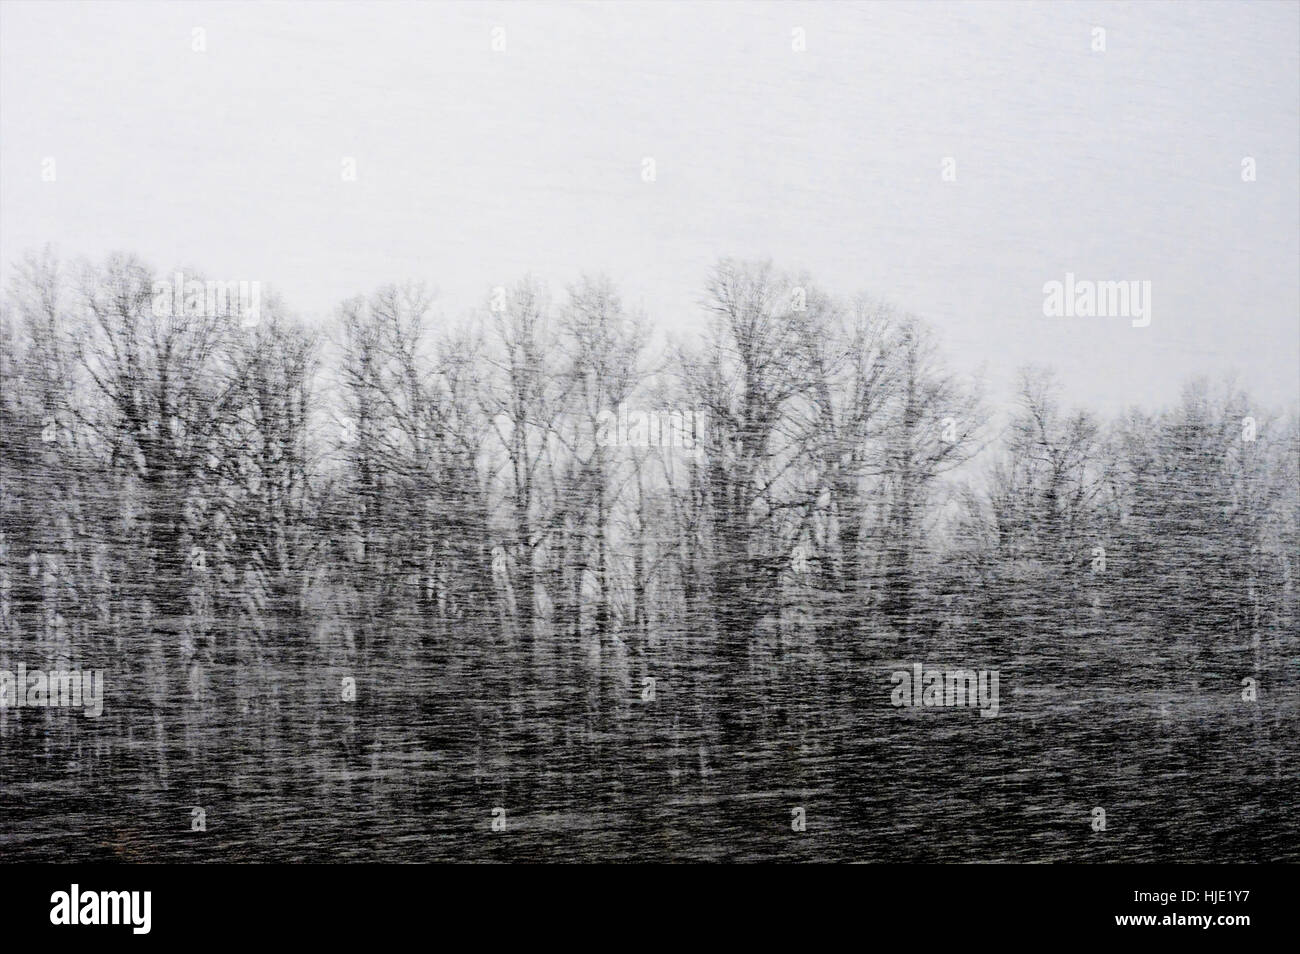 Snow whirling past a forest of leafless trees in a snowstorm. - Stock Image